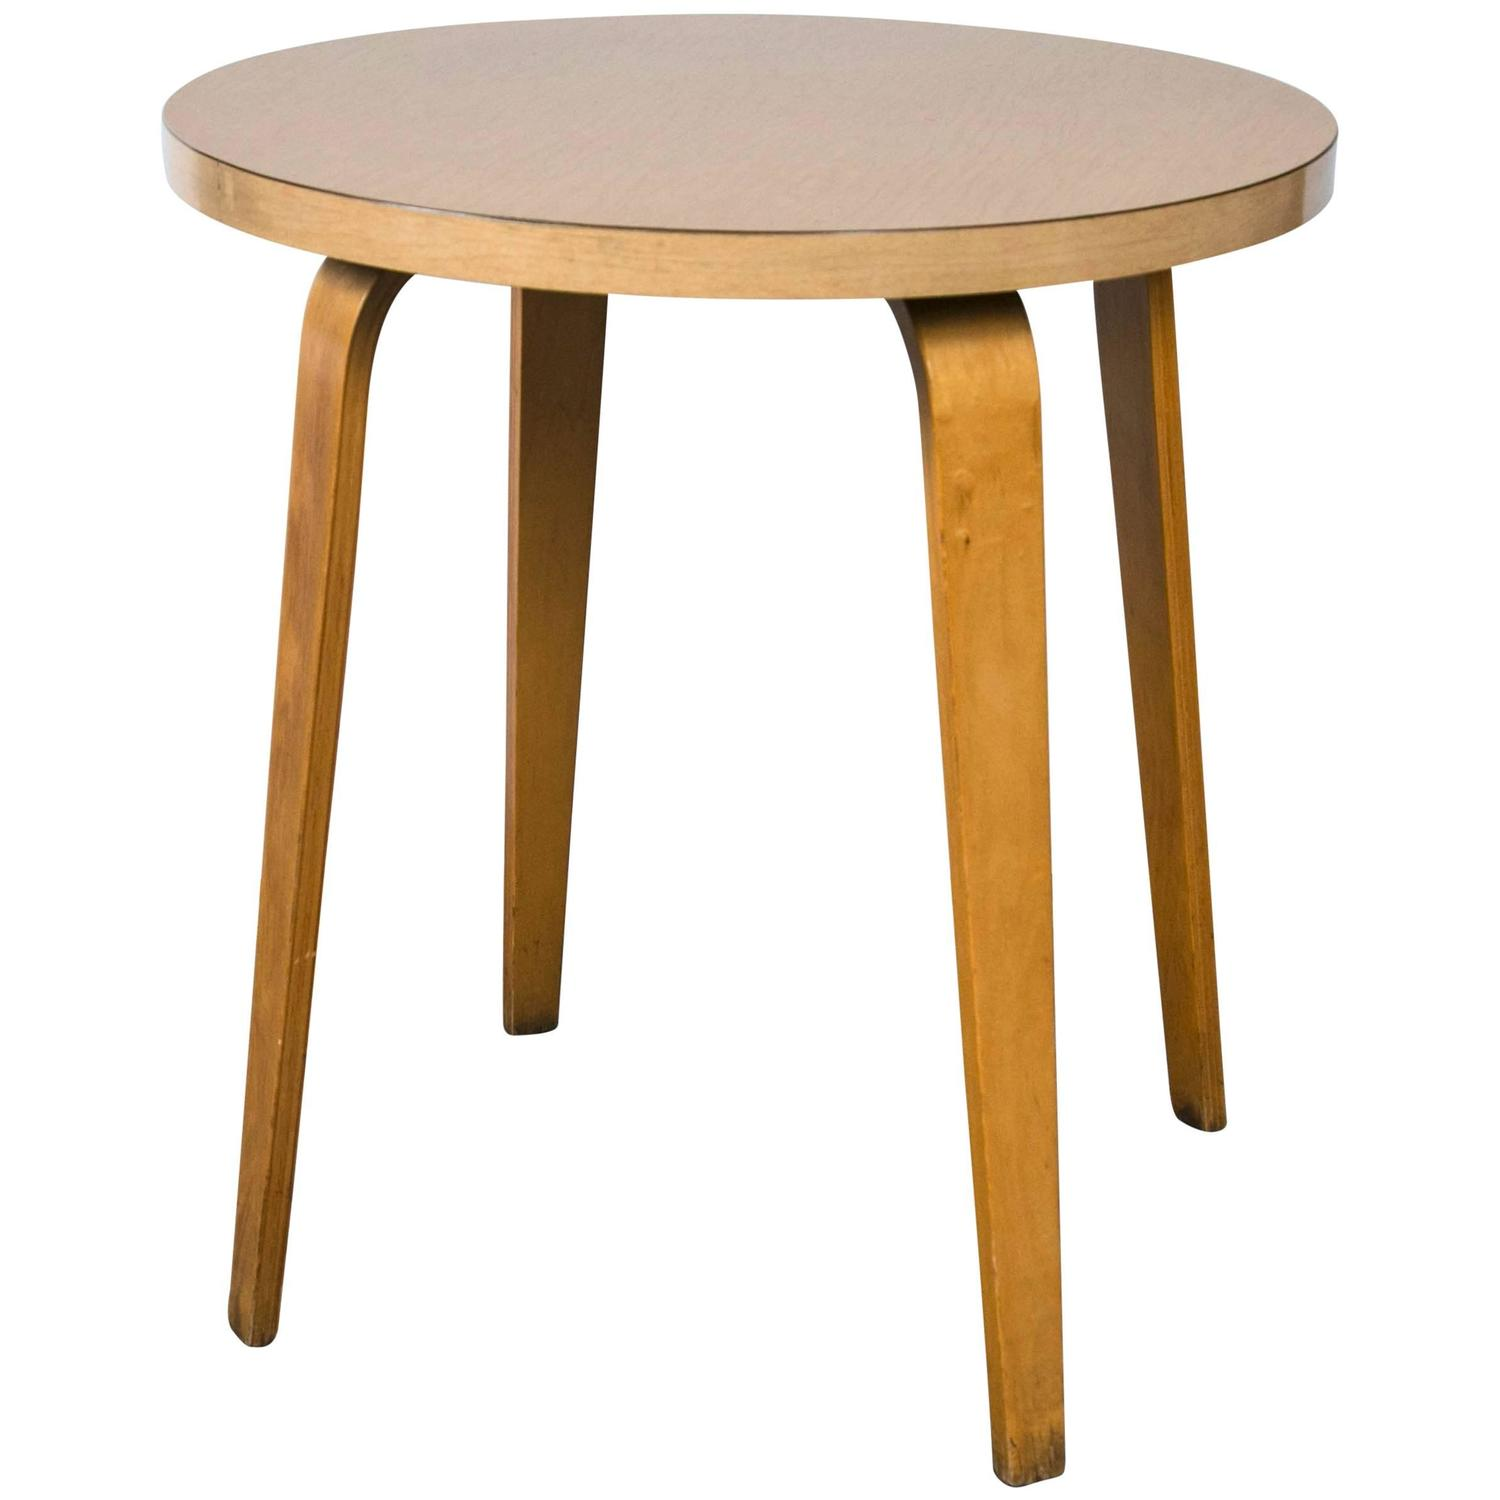 Thonet side table mid century modern at 1stdibs Modern side table